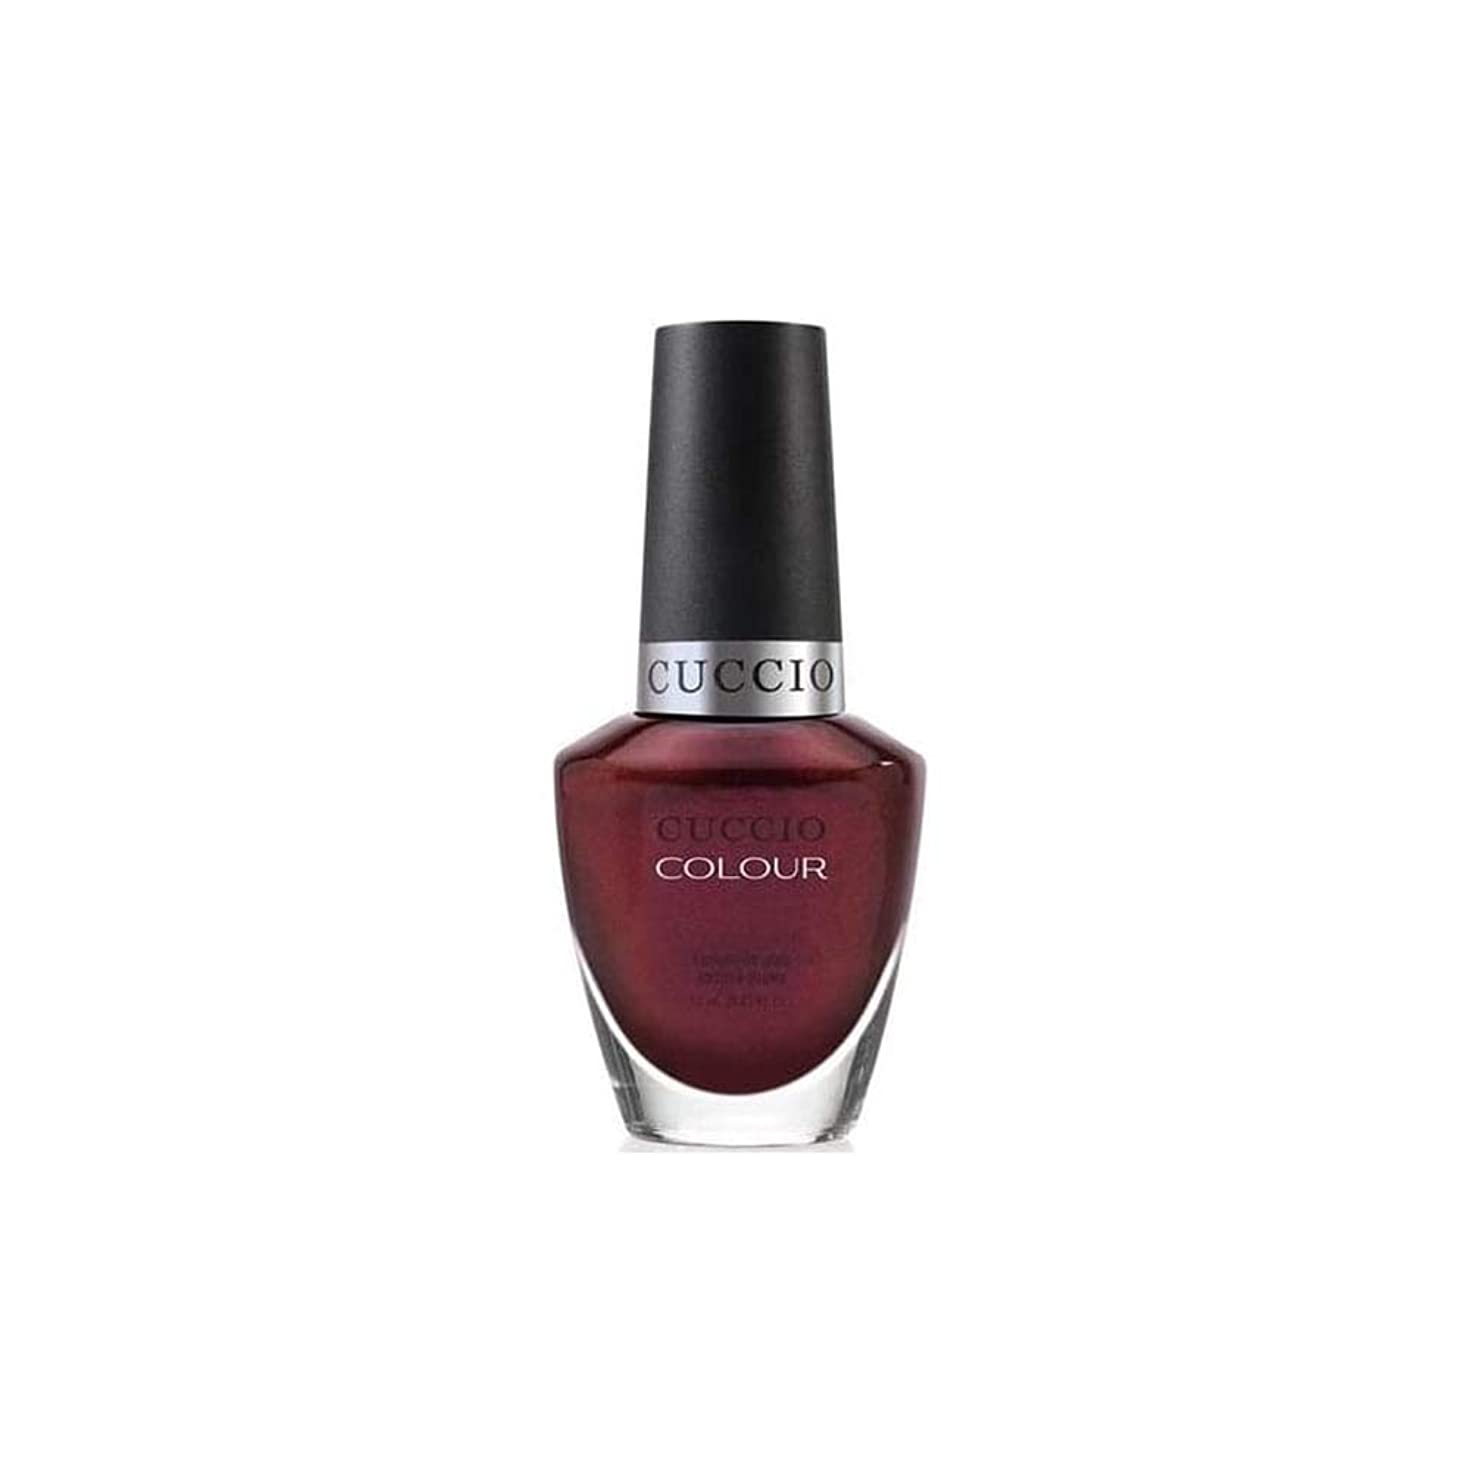 村止まる吸収剤Cuccio Colour Gloss Lacquer - Royal Flush - 0.43oz / 13ml